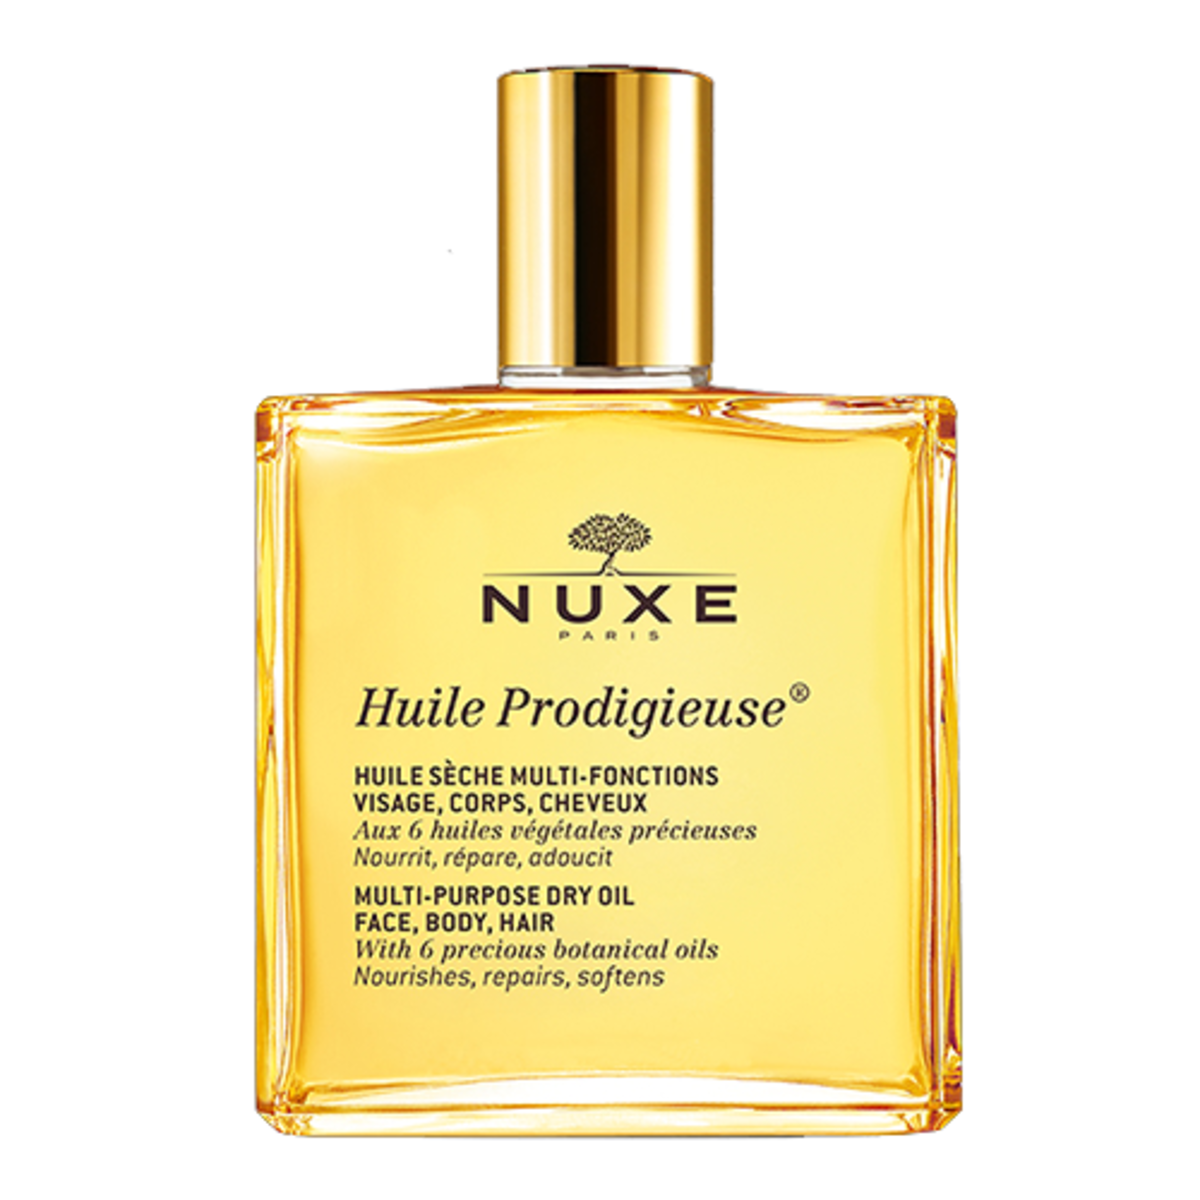 nuxe-huile-prodigieuse-multi-purpose-dry-oil-100ml-by-nuxe-3bf